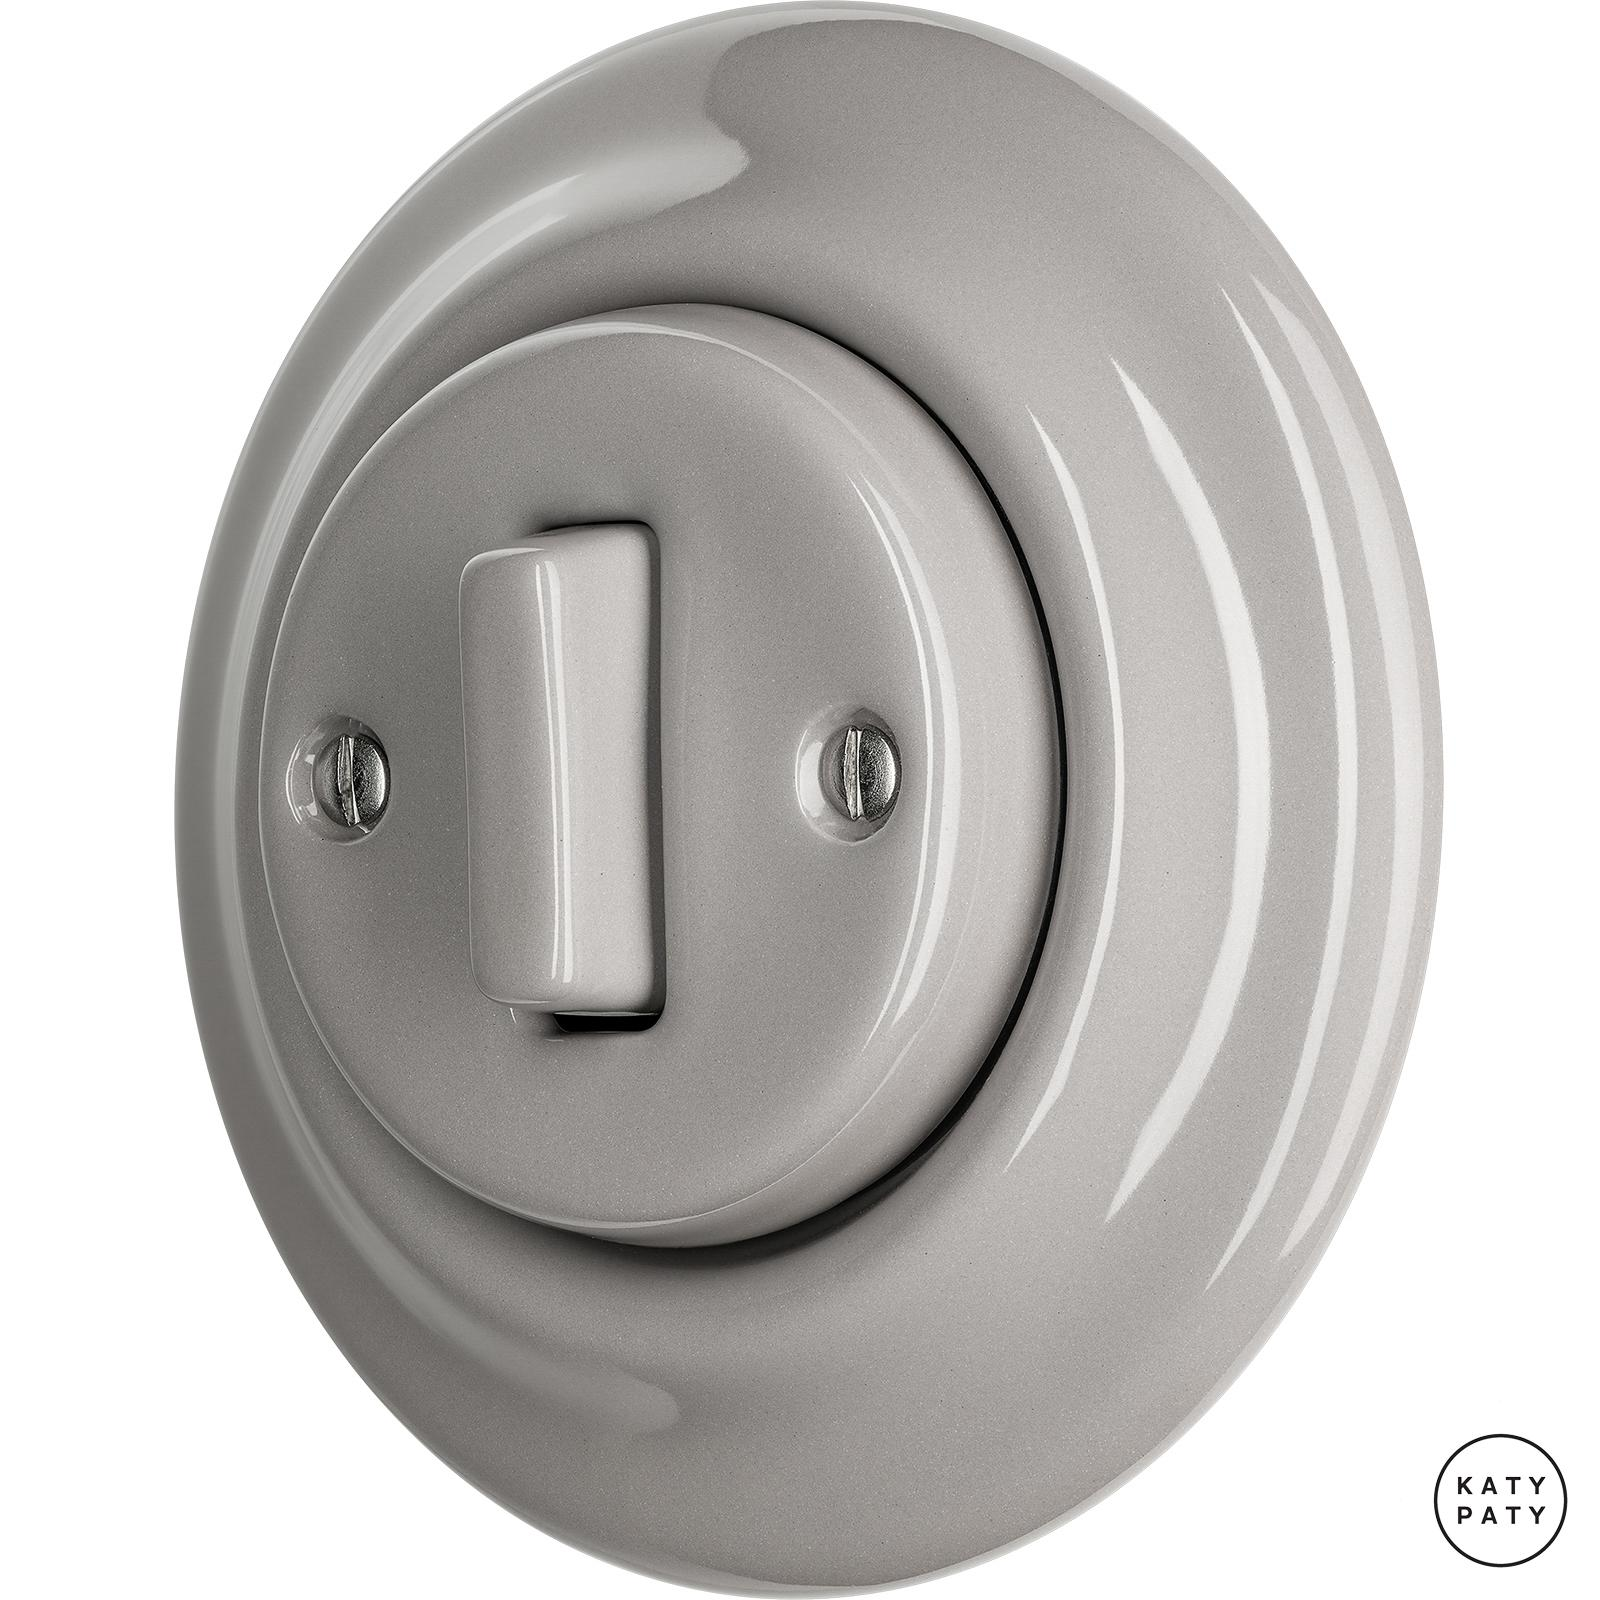 Porcelain switches - 1 gang - SLIM ()  - LUCIDUM | Katy Paty